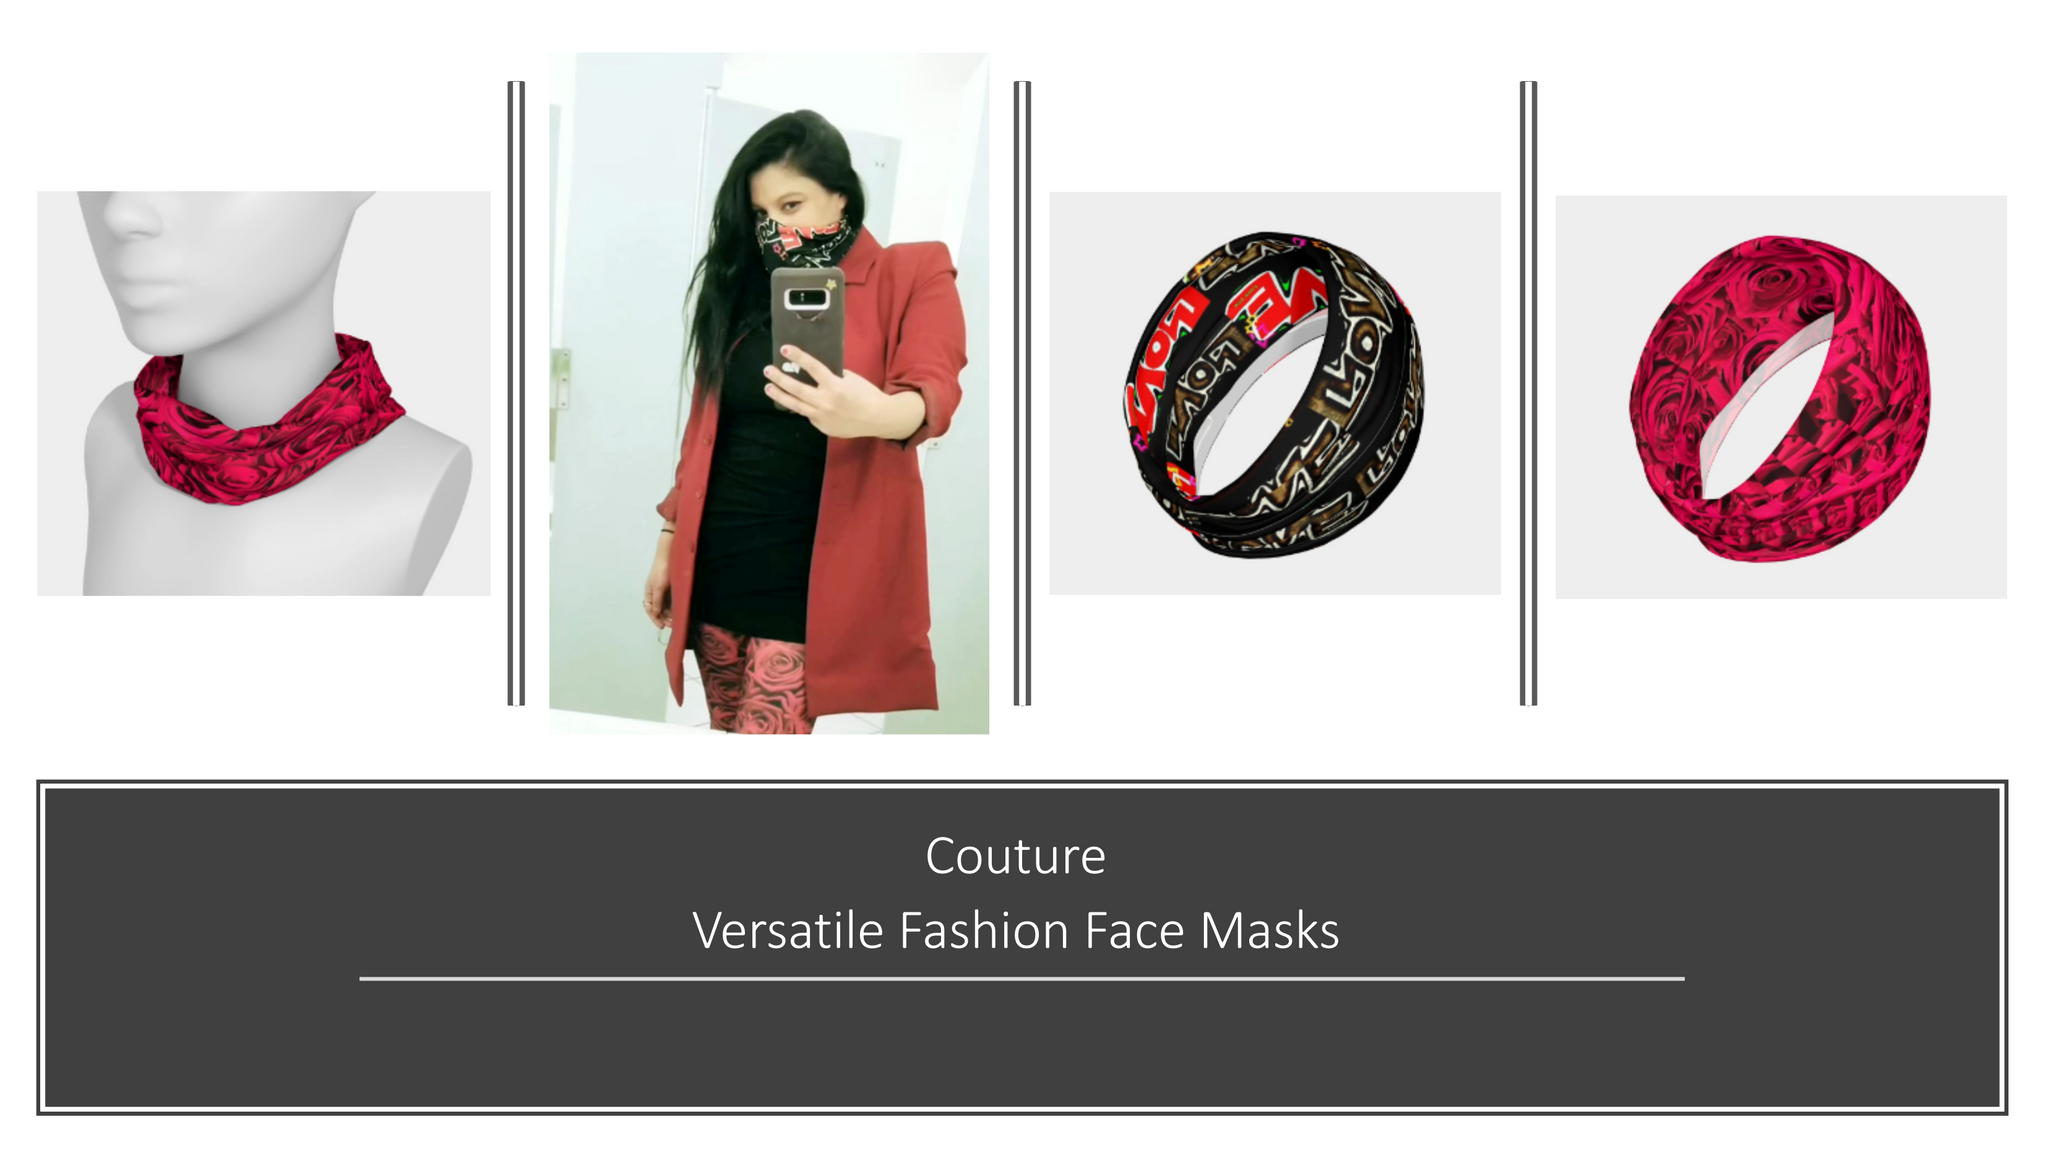 J'aime has created custom couture versatile fashion face masks that you can wear as a layer of protection during the coronavirus.